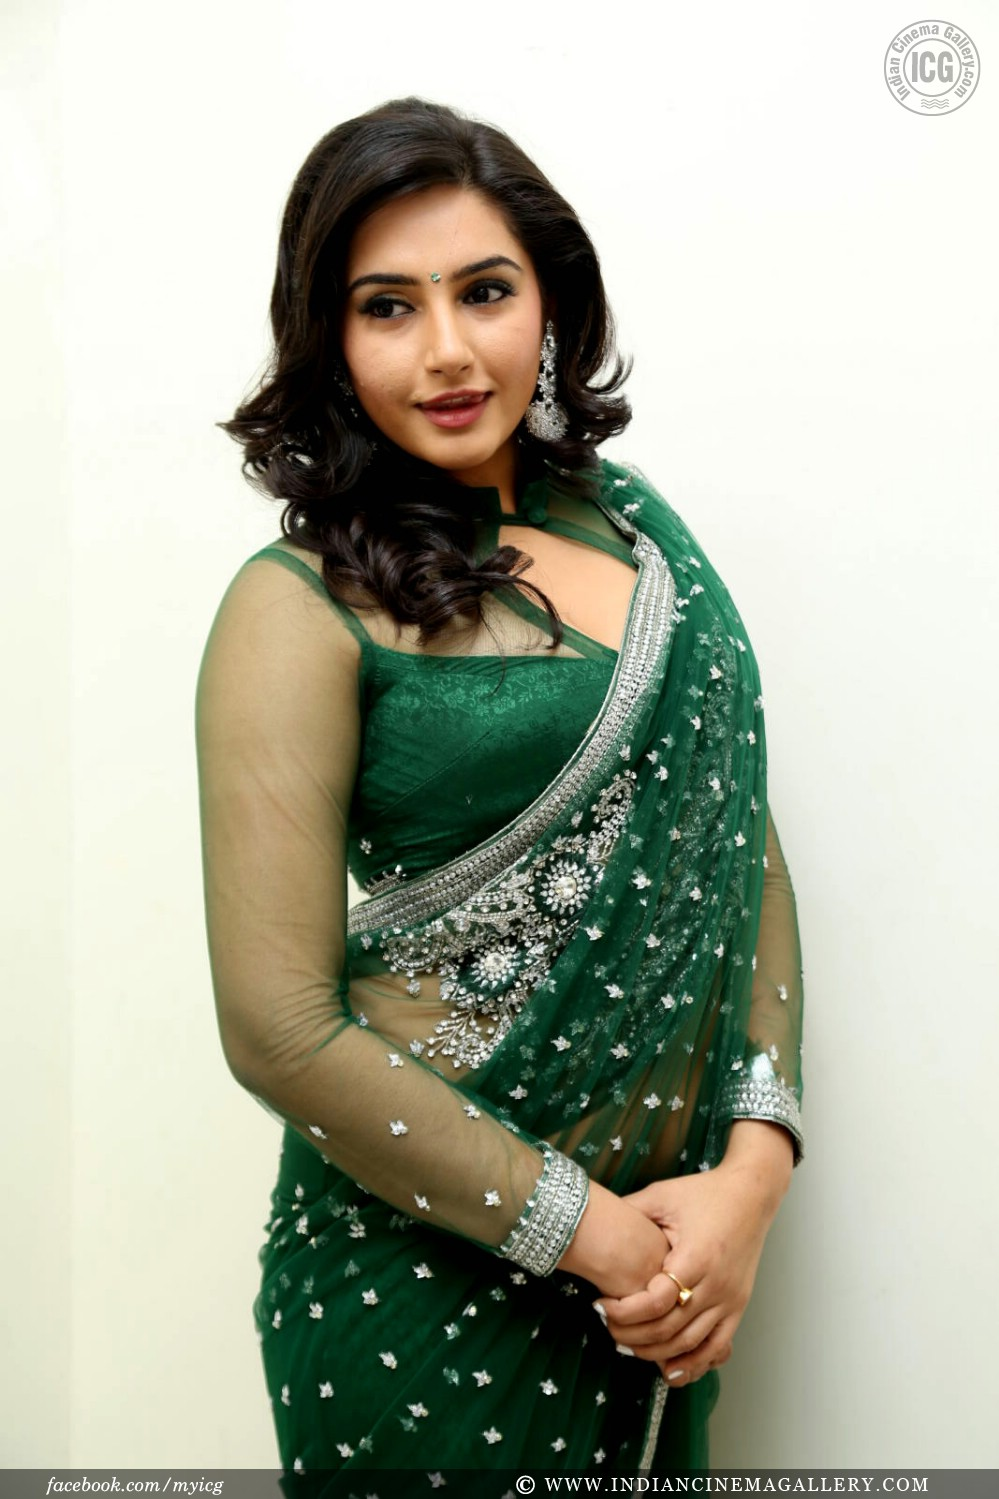 18 | Ragini Dwivedi – Indian Cinema Gallery